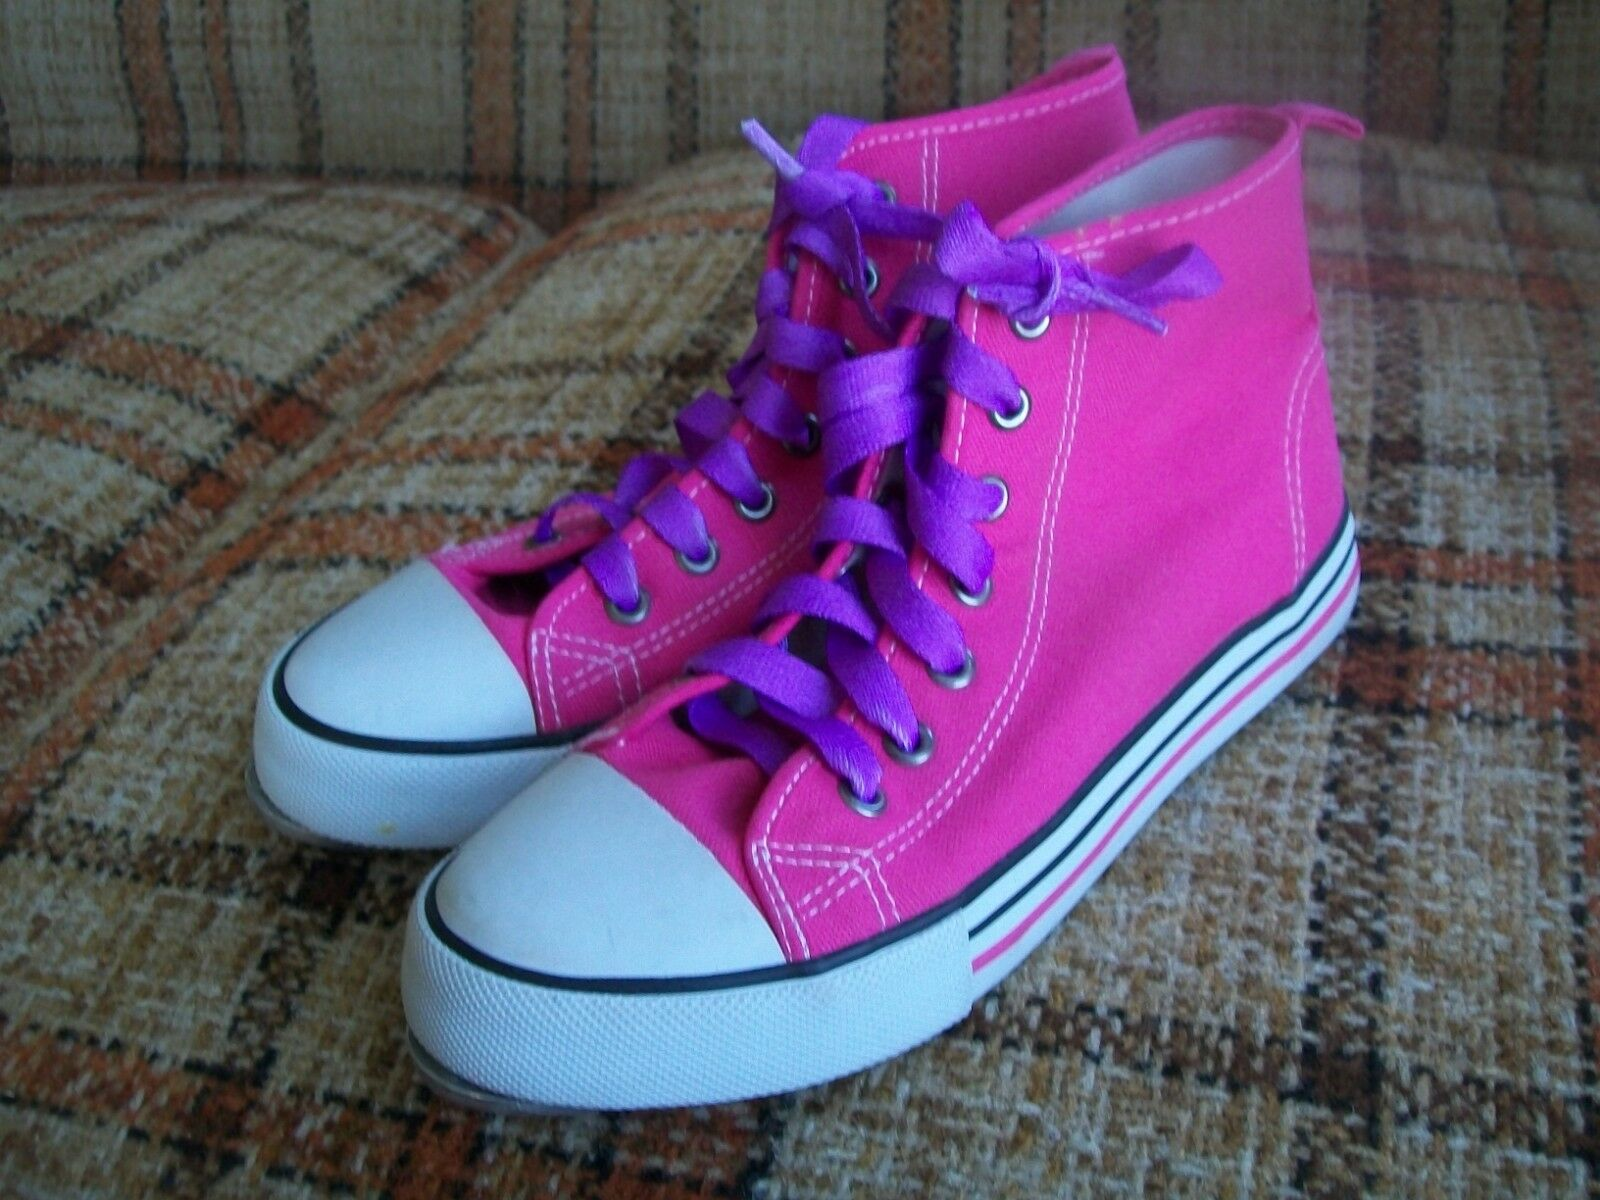 H&M Womens 4.5 (37) Pink Canvas Hightop Tap Sneakers